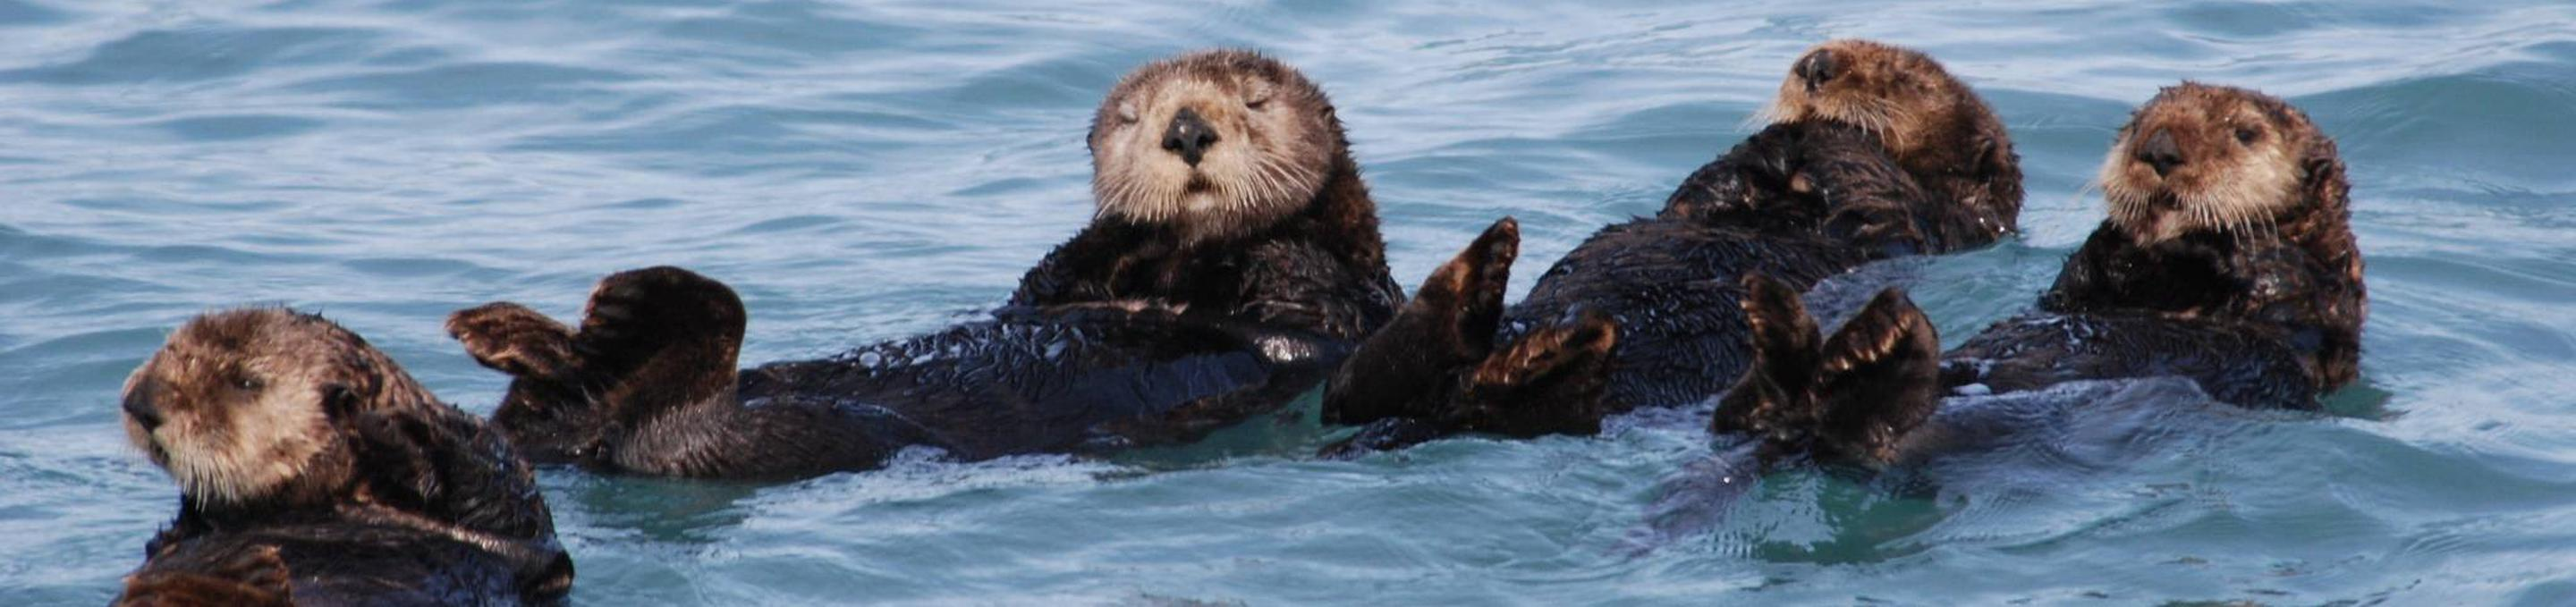 Monterey Bay National Marine SanctuarySea Otters in Monterey Bay National Marine Sanctuary